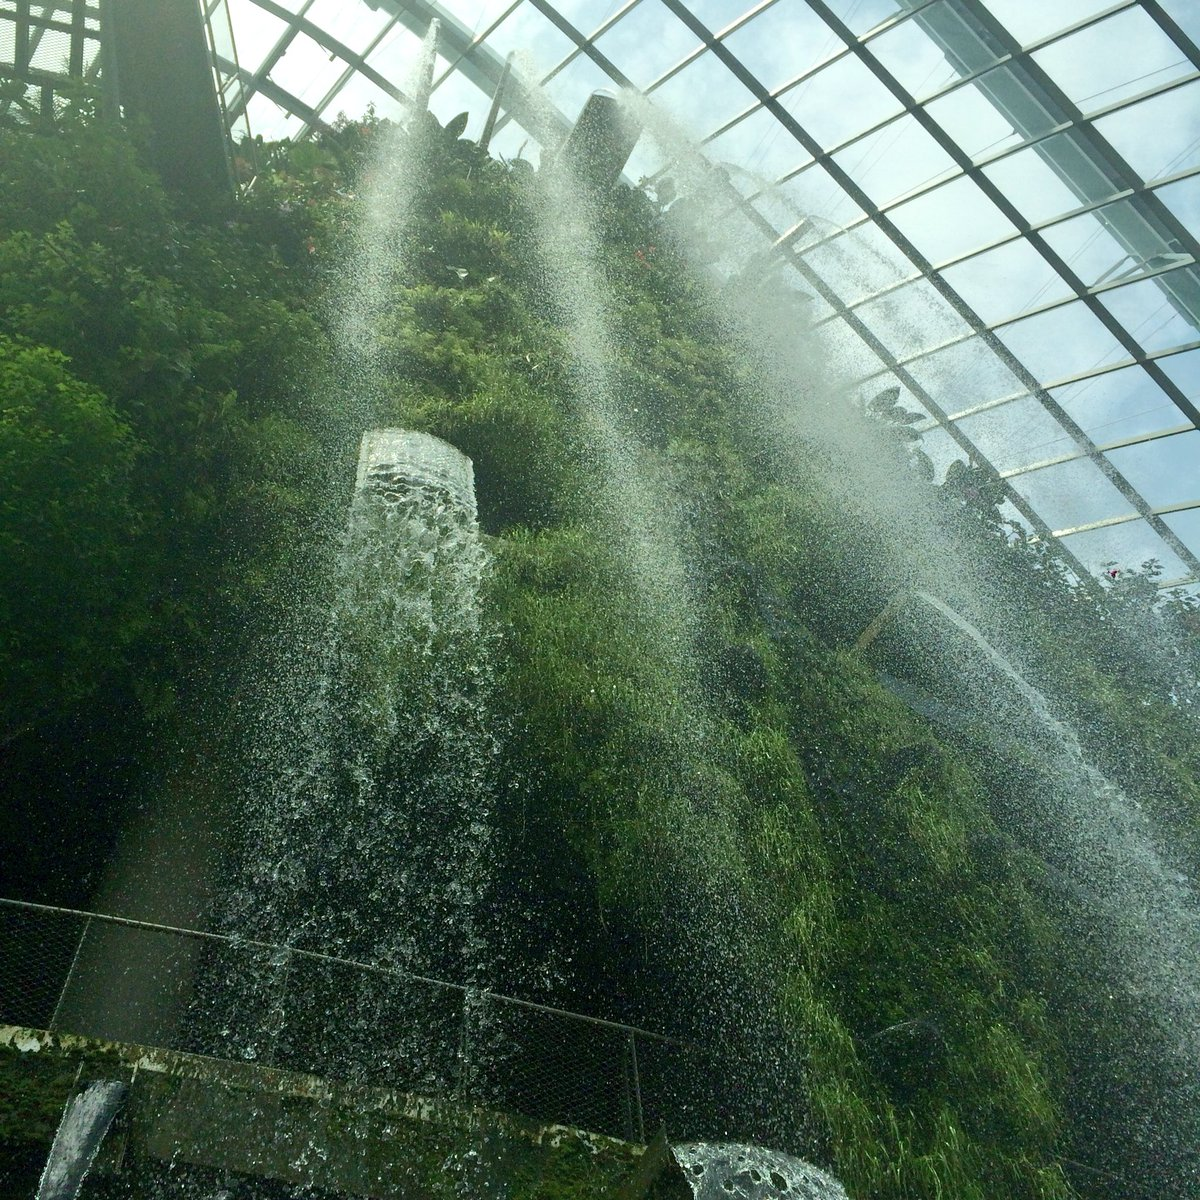 The cool, moist Cloud Forest at #Singapore's Gardens by the Bay features a waterfall and a columnless steel grid. https://t.co/YrQvuOw61F